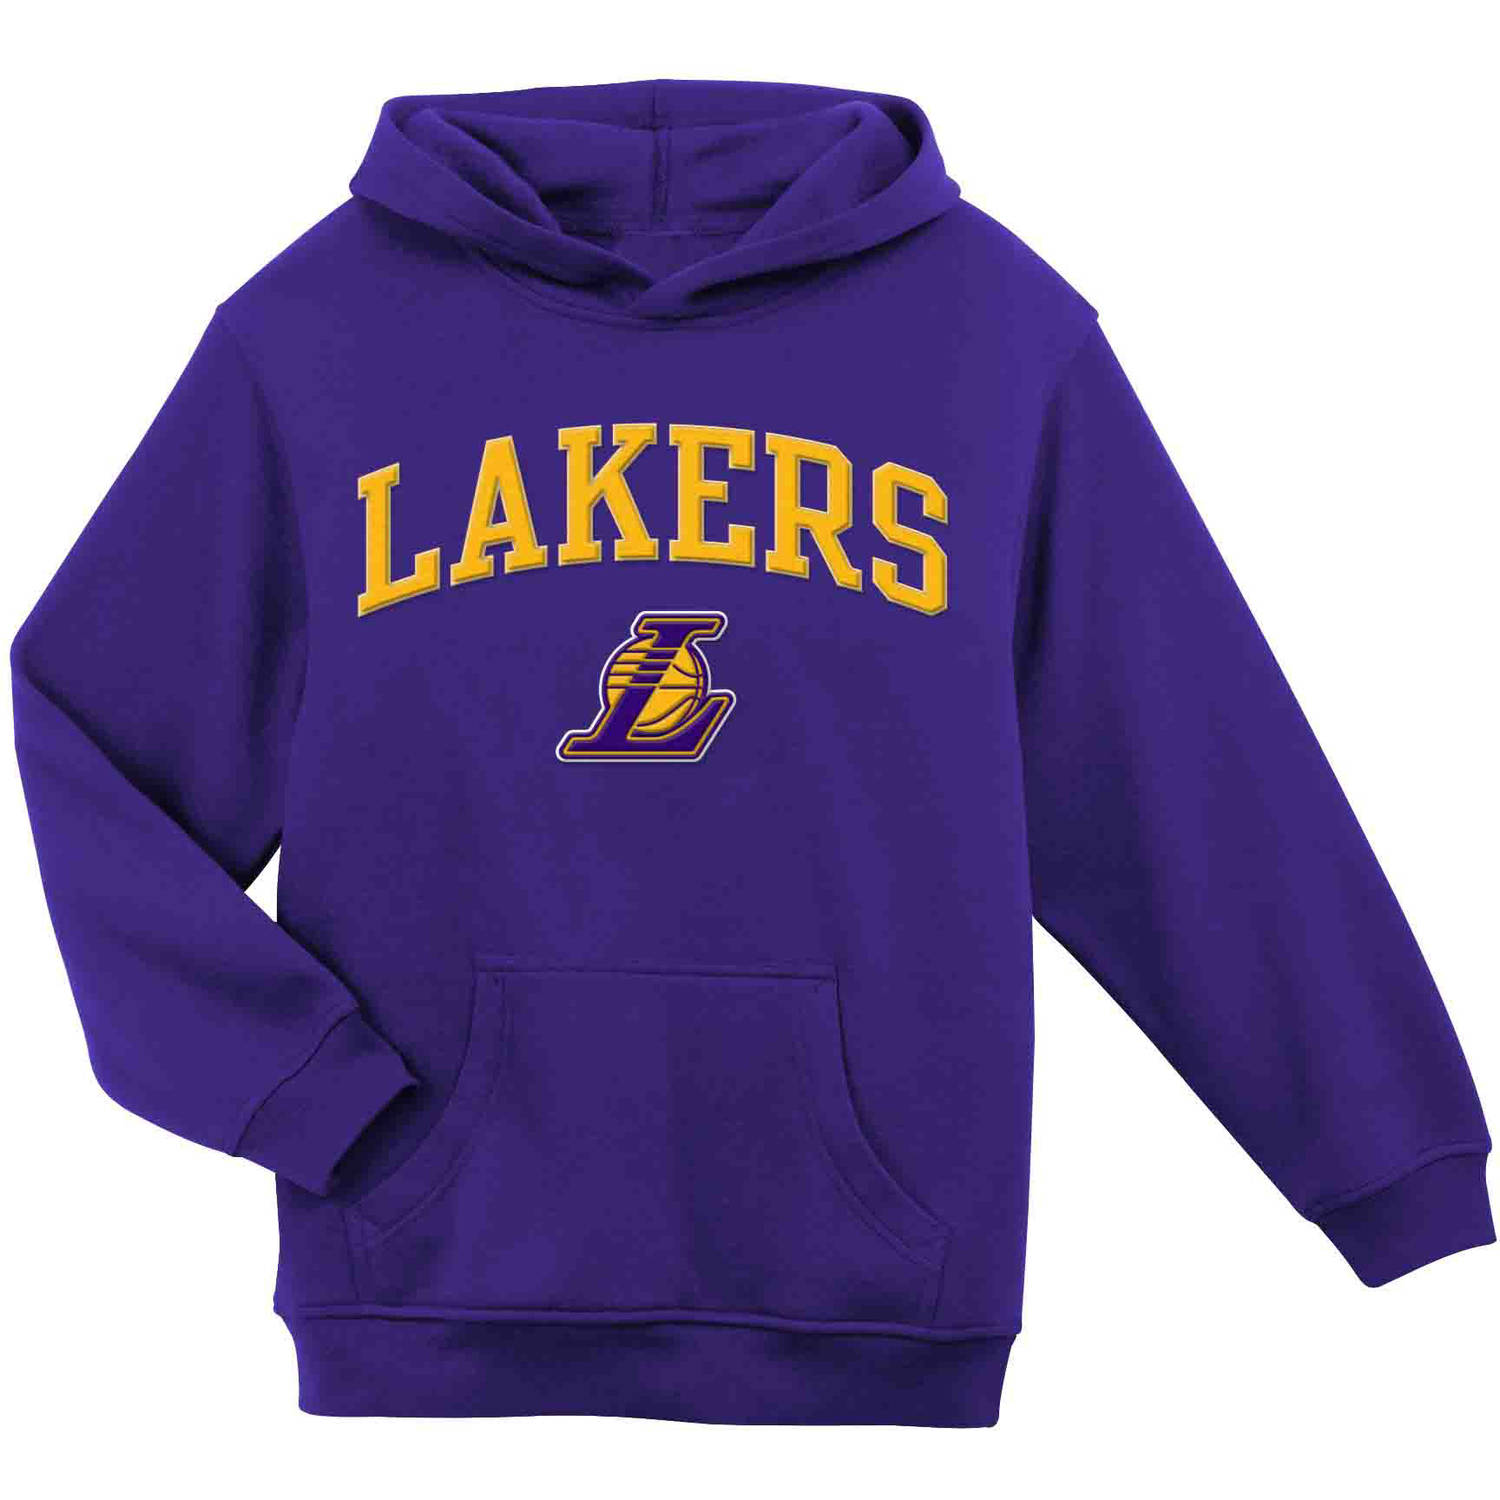 NBA Los Angeles Lakers Youth Team Hooded Fleece